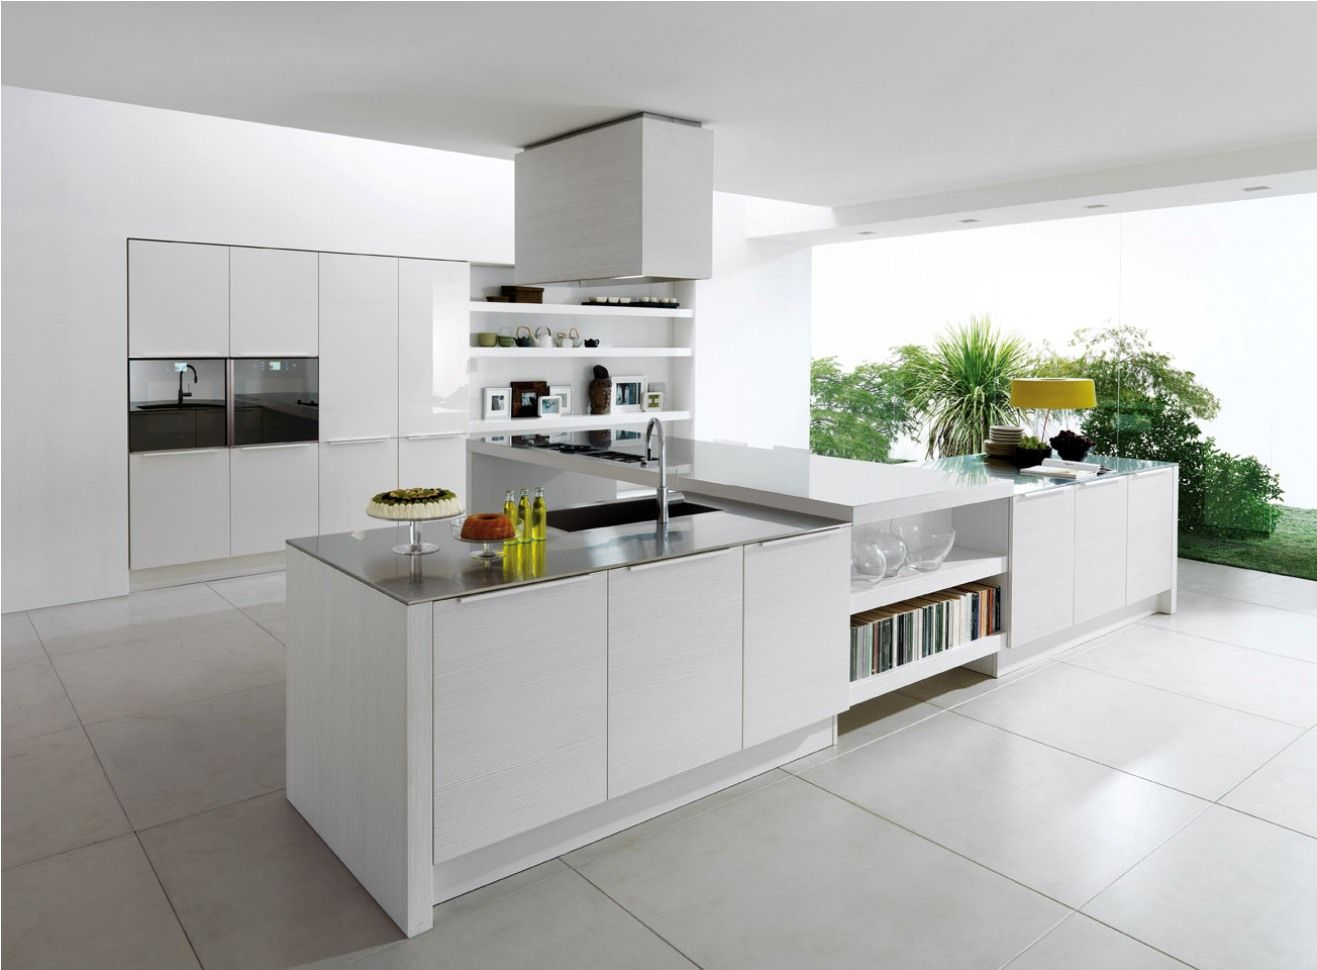 Modern White Kitchens With Wood 30 contemporary white kitchens ideas | modern kitchen designs